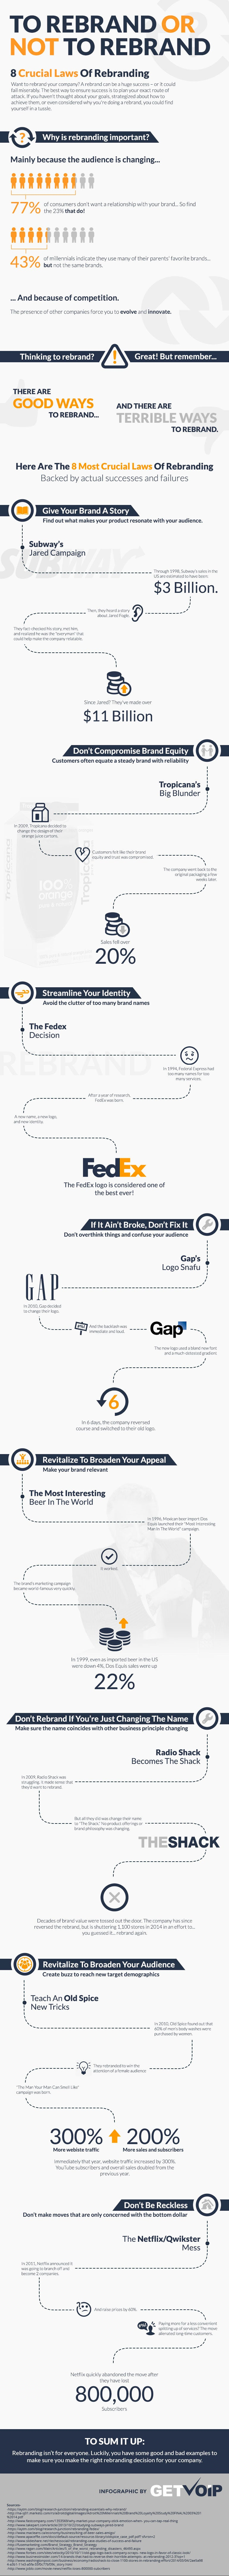 1410363120-8-must-follow-rules-rebranding-company-infographic